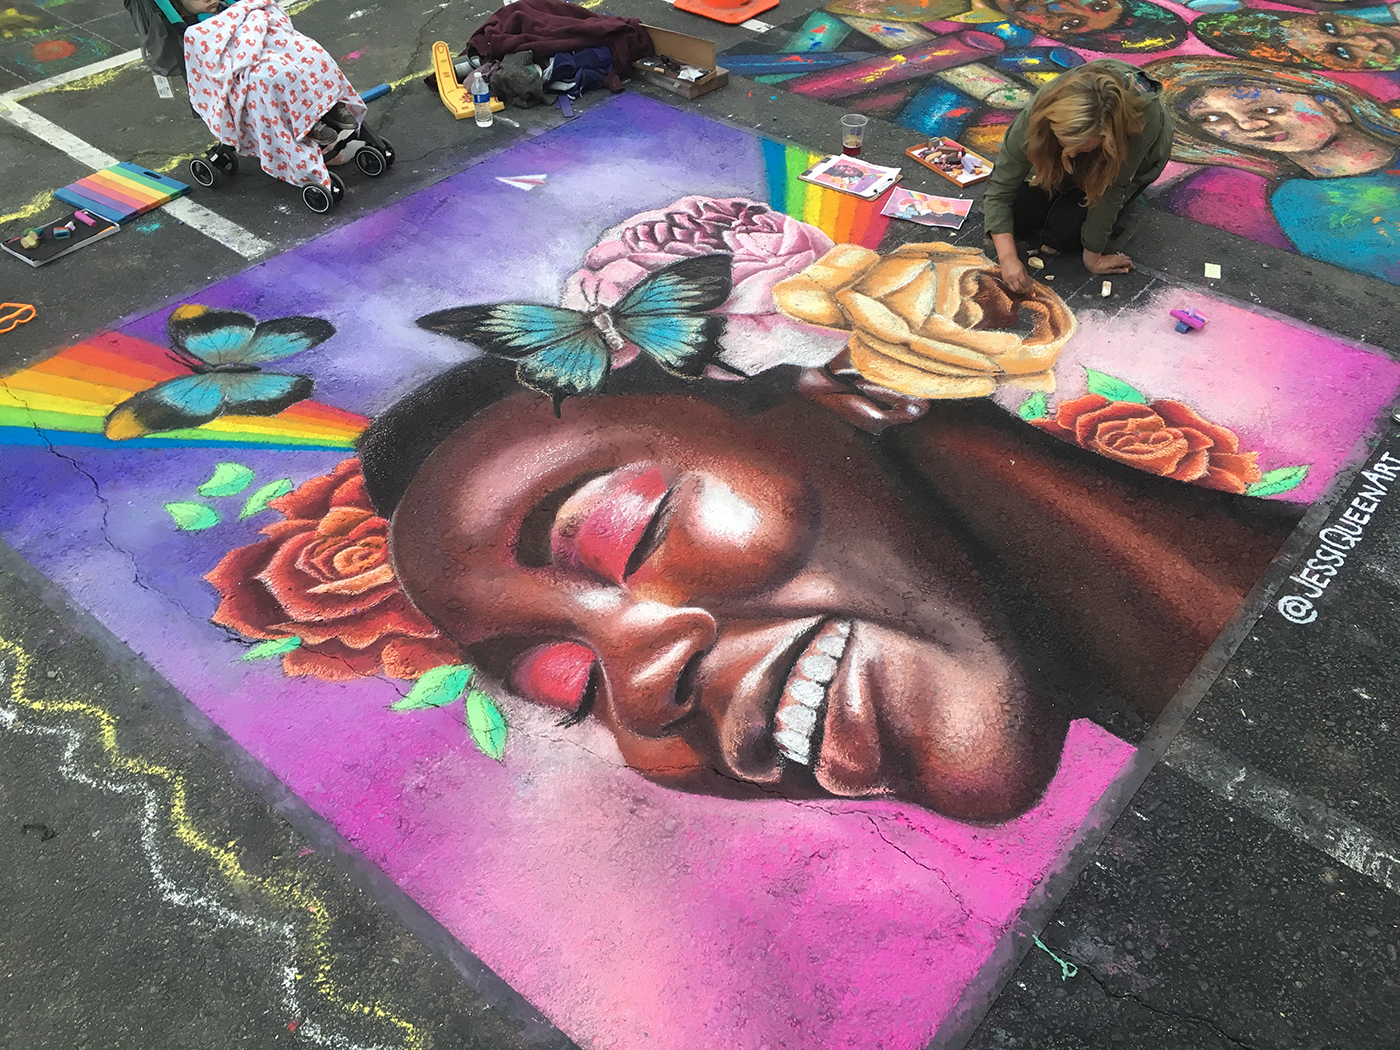 jessi-queen-chalk-art-tempe-2019-02